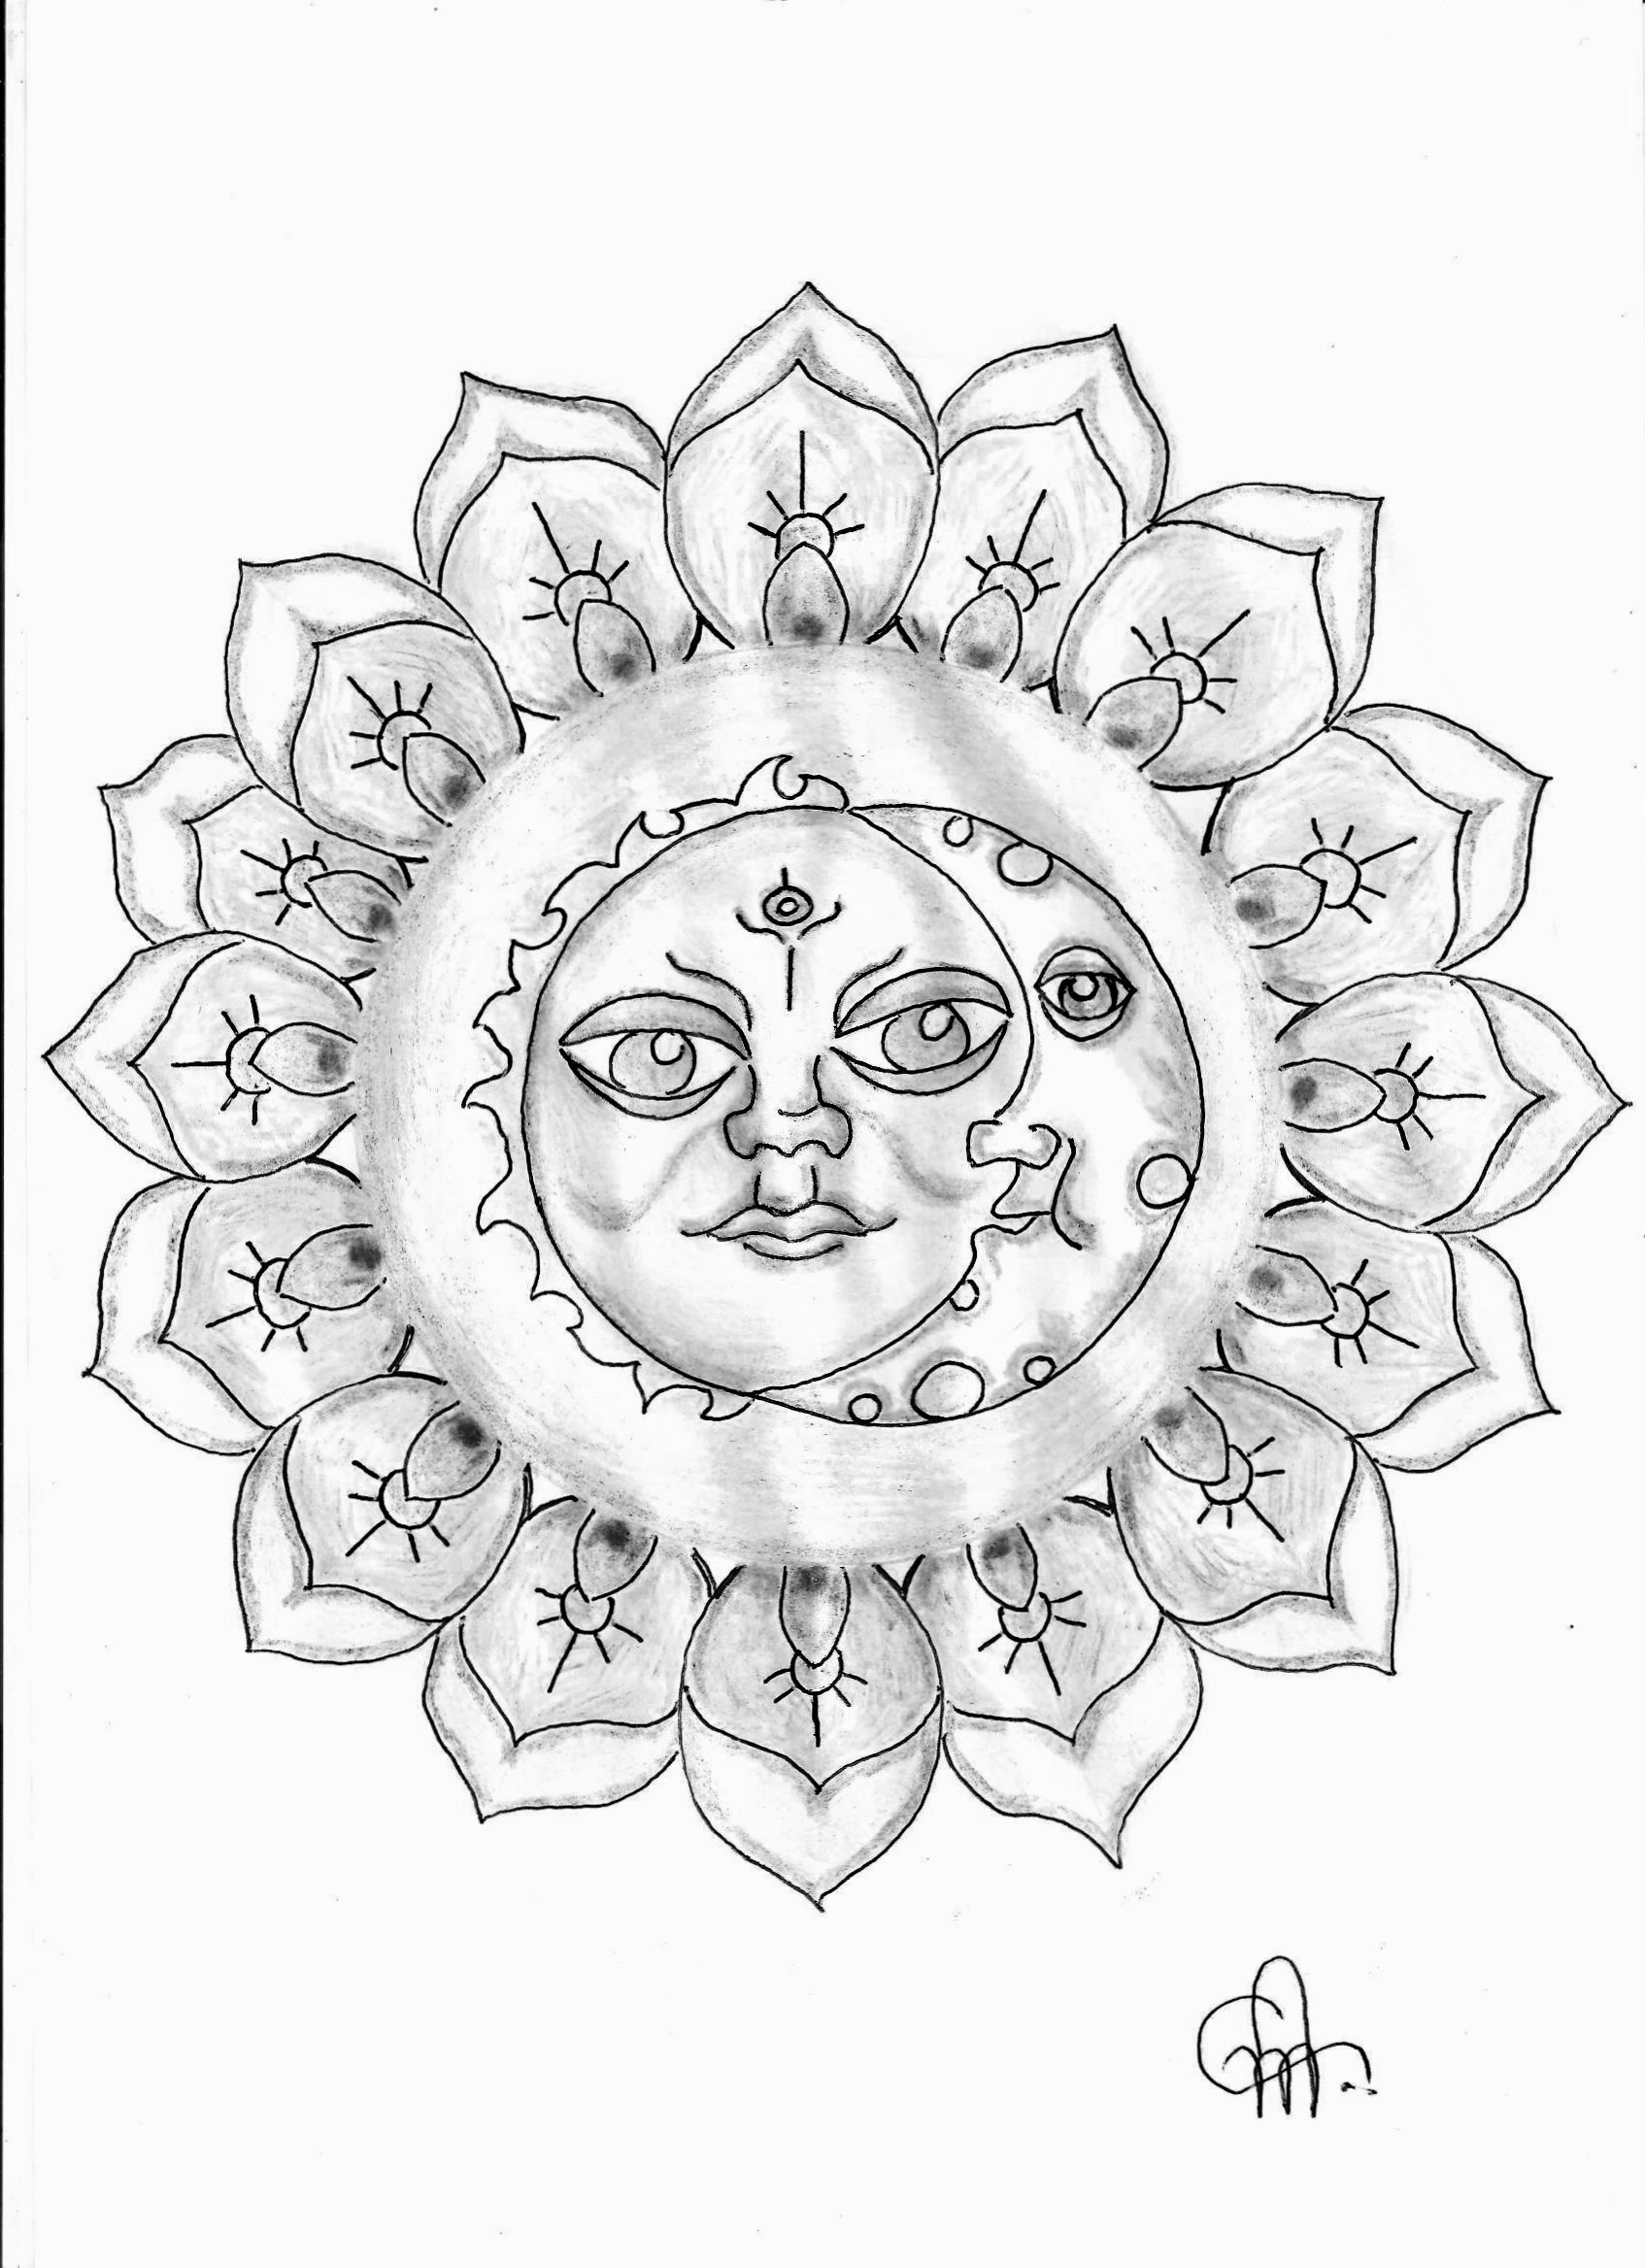 cool sun coloring pages moon sun coloring page cosmicthreads moonandsun sun coloring pages cool